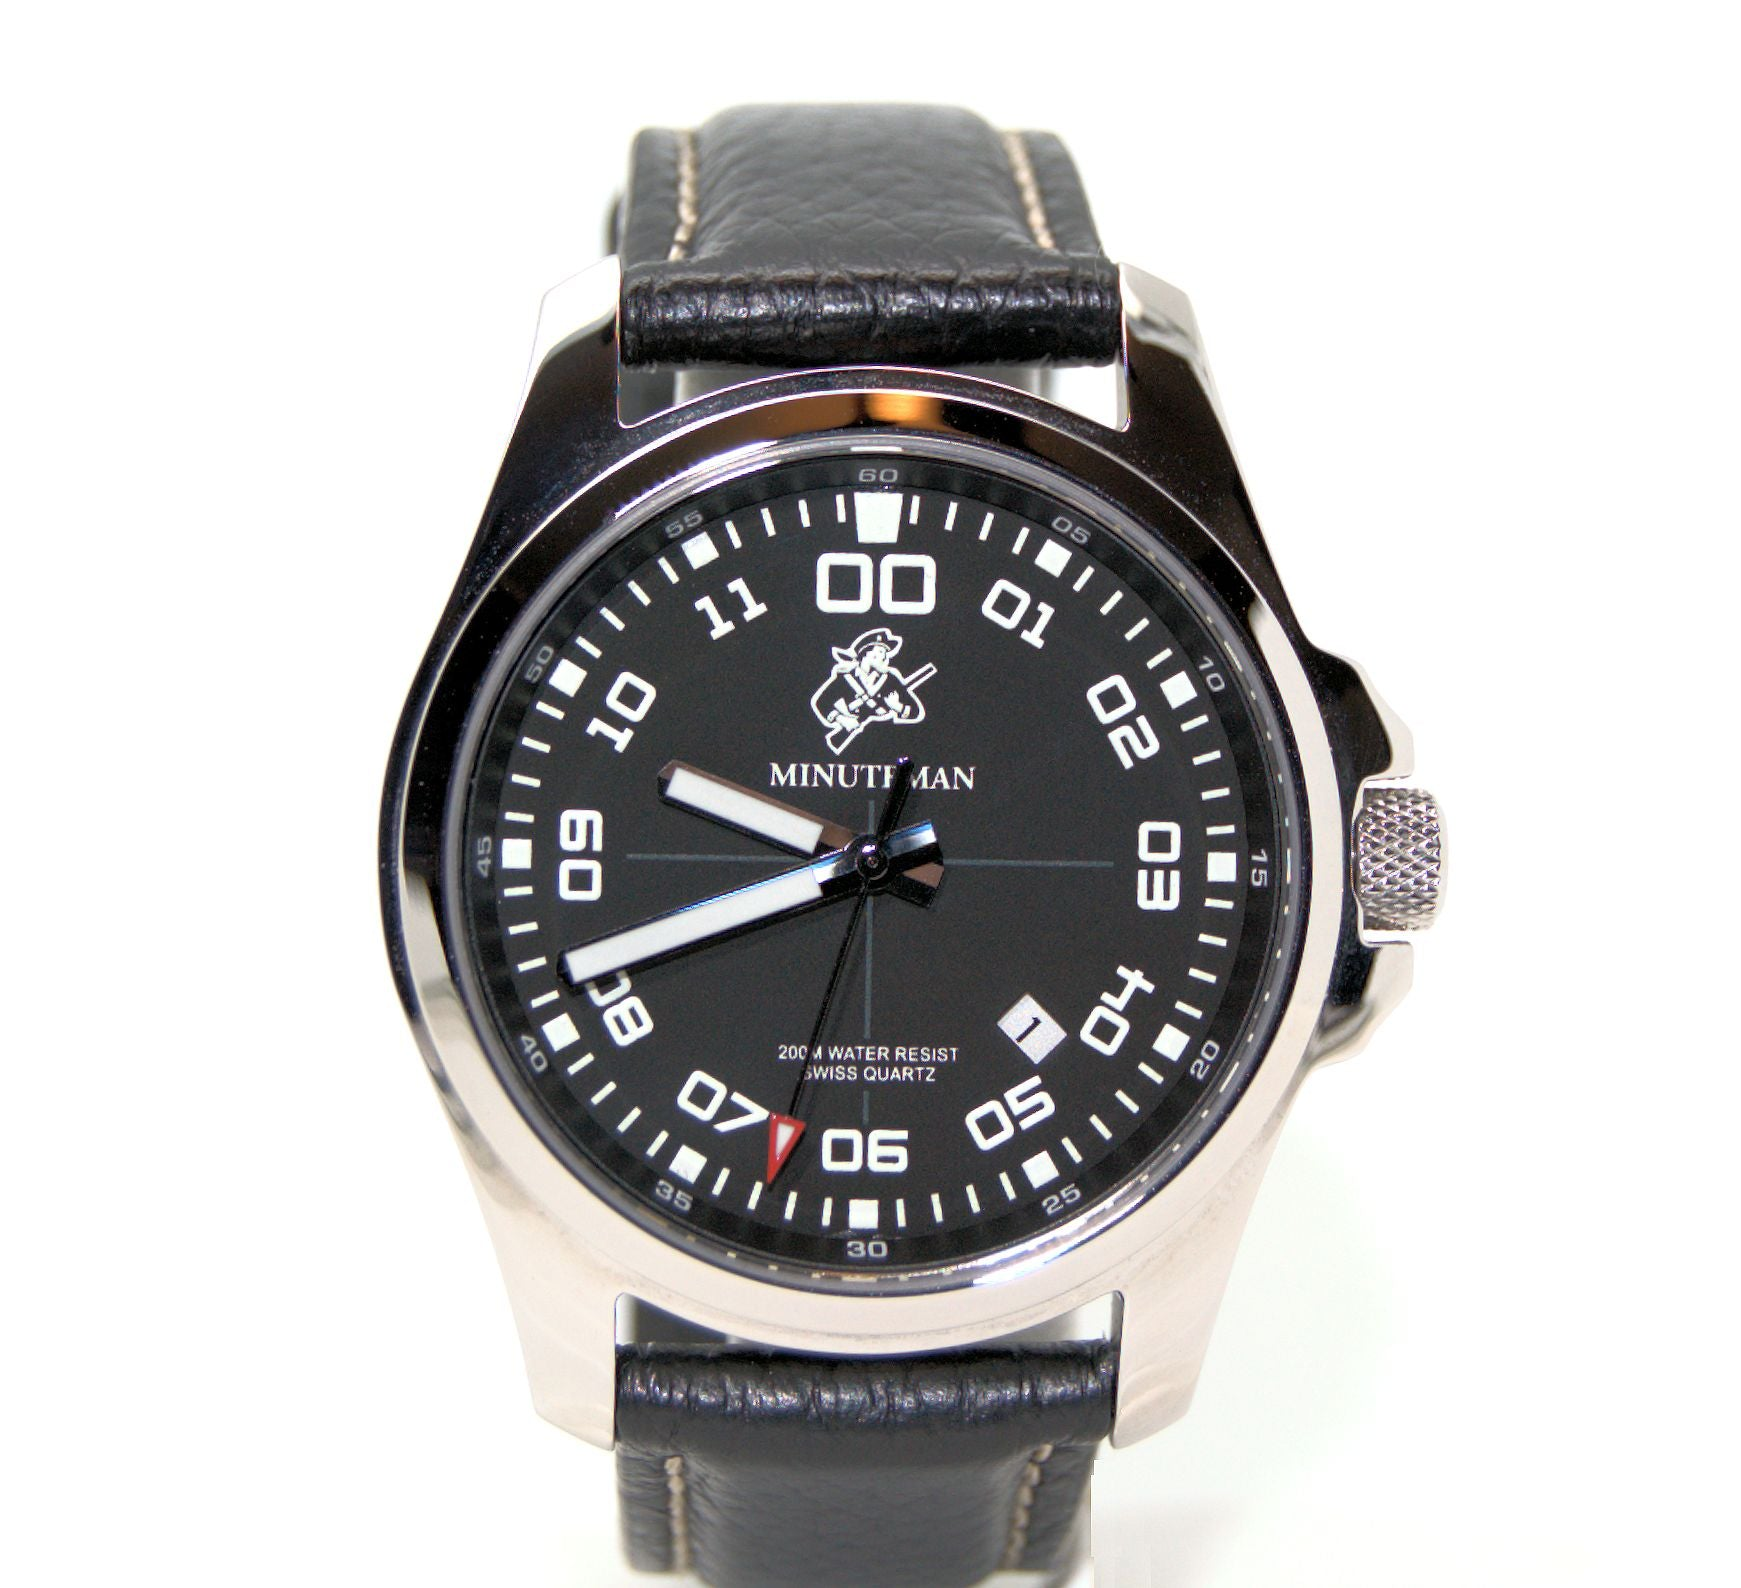 Minuteman Special Edition MM04 Watch Black Leather Strap,minutemanwatches,Minuteman,Wrist Watch